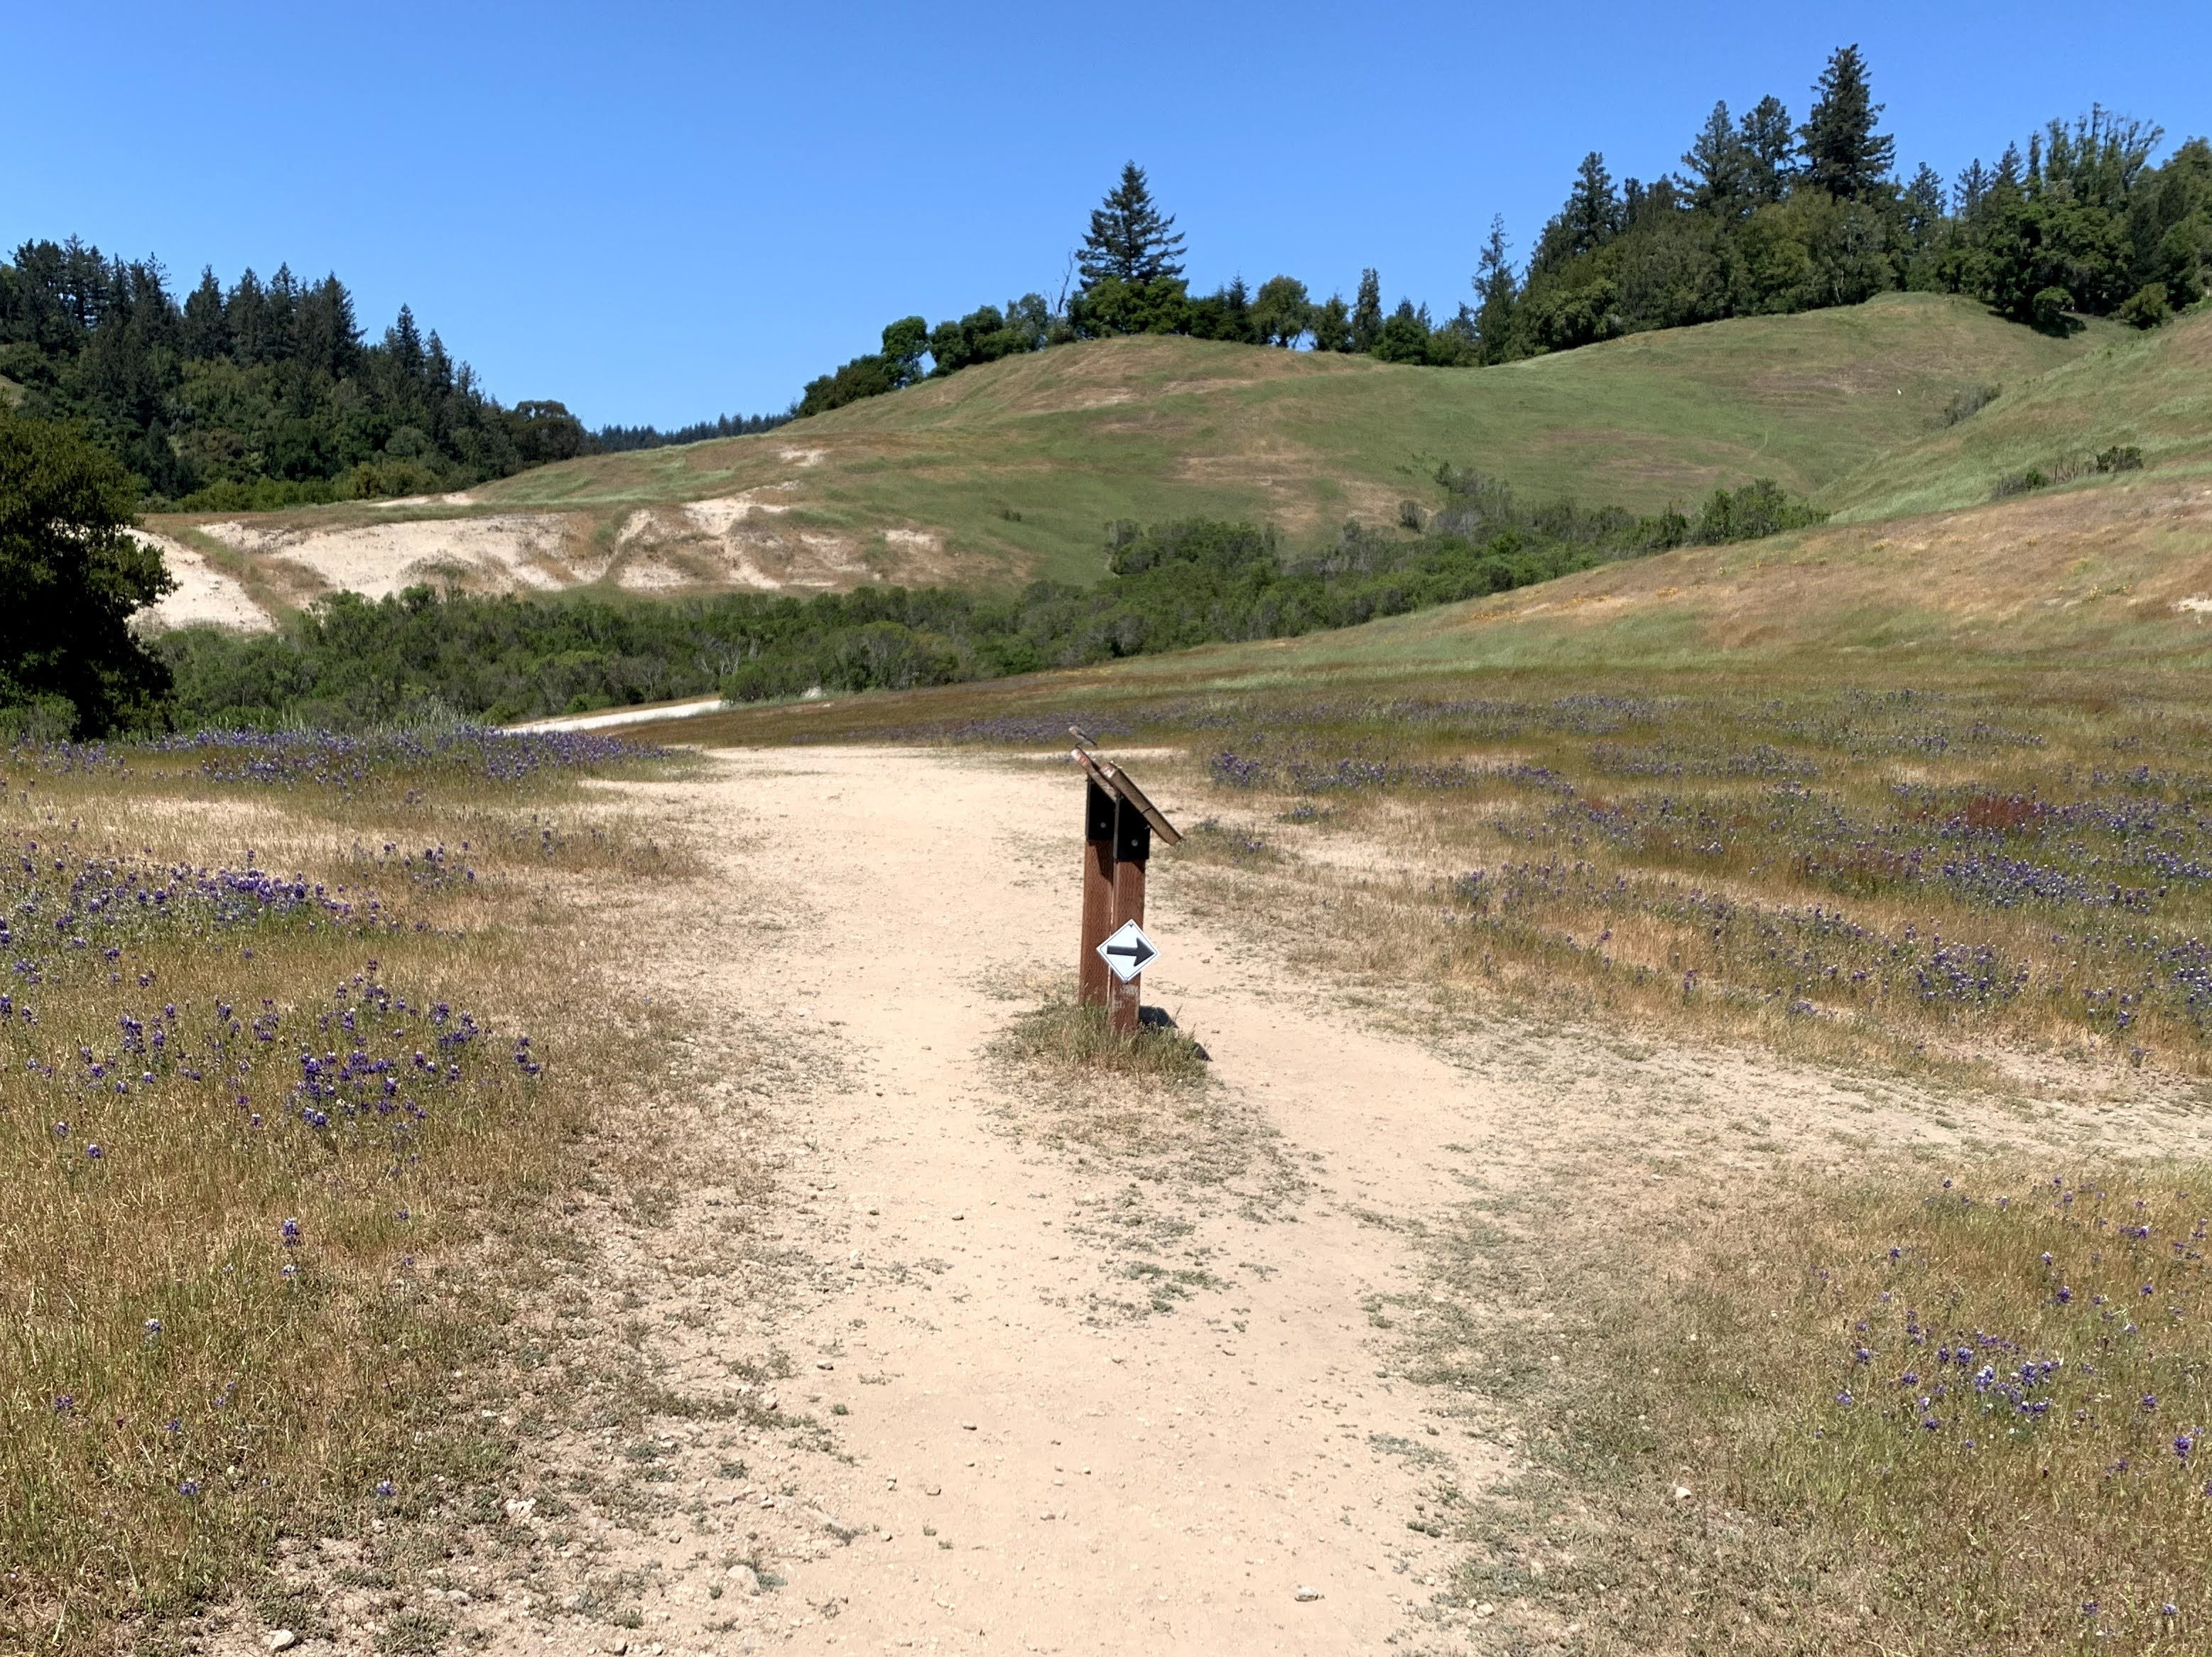 A crossroads of footpaths in green hills on a sunny day. A ridge along the top third has evergreen trees against a cloudless sky. The right and left foreground have purple lupines. A sign in the center has a small white sign with a black arrow pointing right.